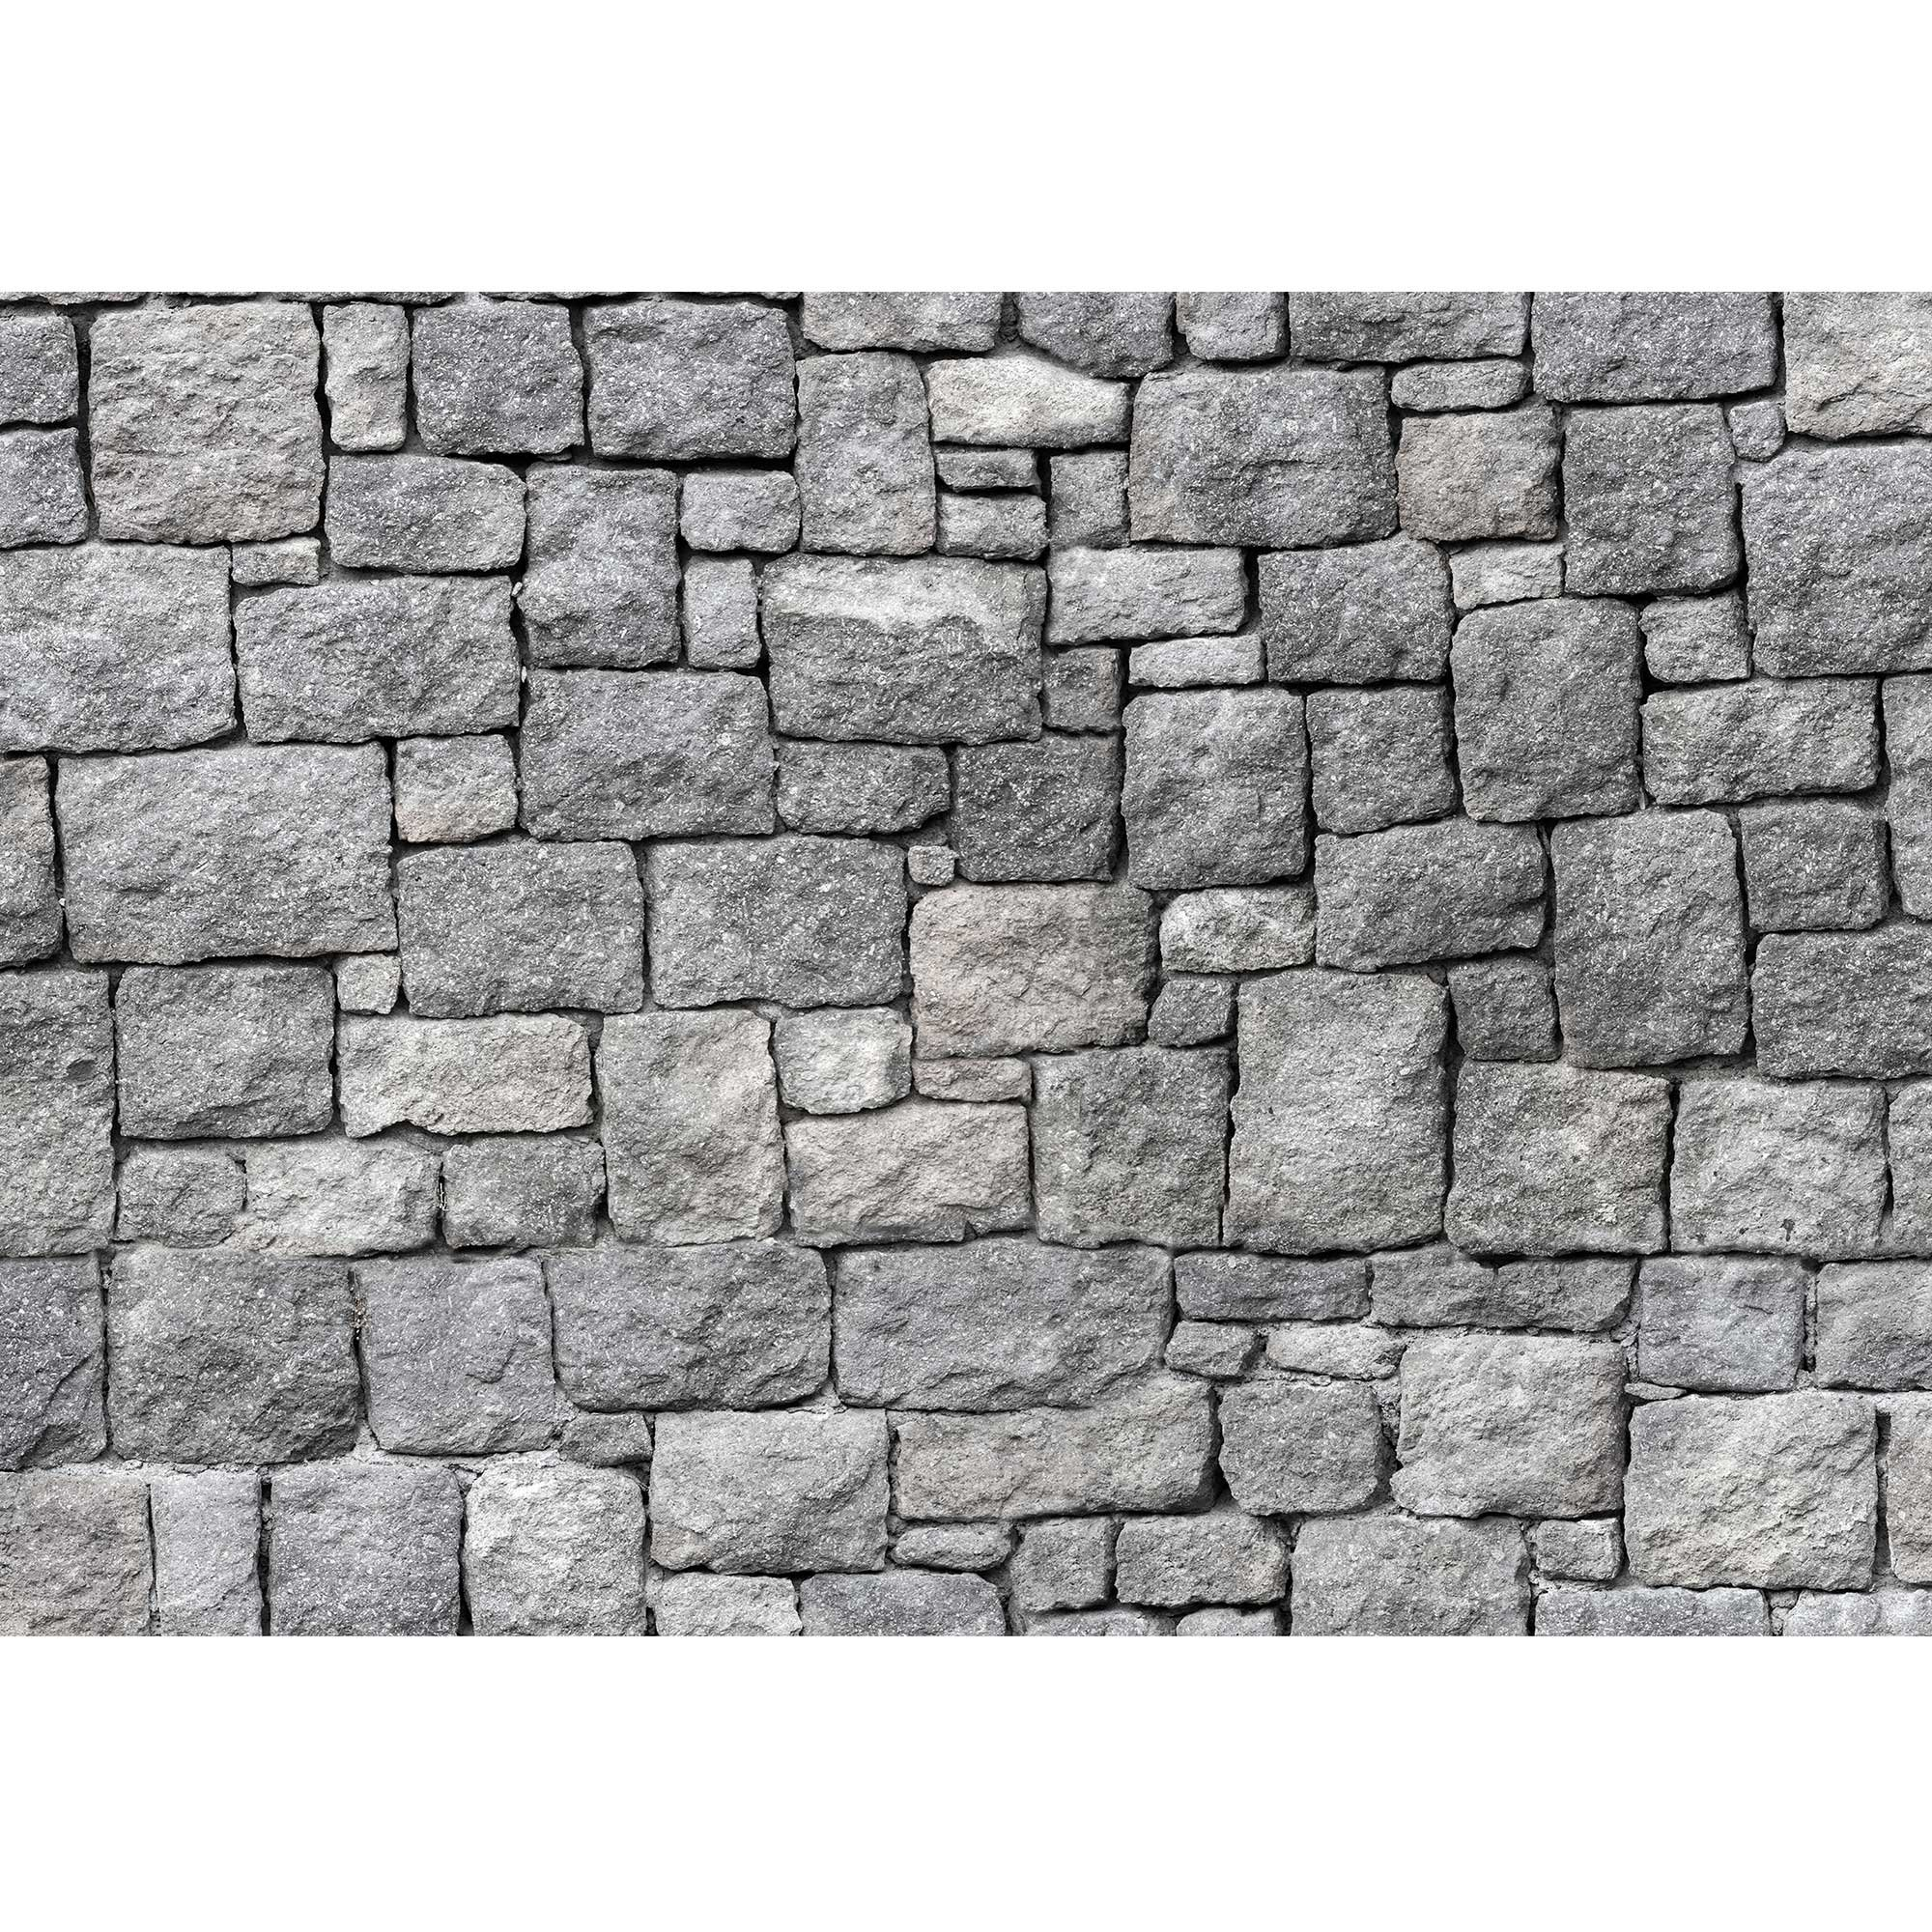 wall26 - Old Gray Stone Wall, Seamless Background Photo Texture - Removable Wall Mural | Self-Adhesive Large Wallpaper - 100x144 inches by wall26 (Image #2)